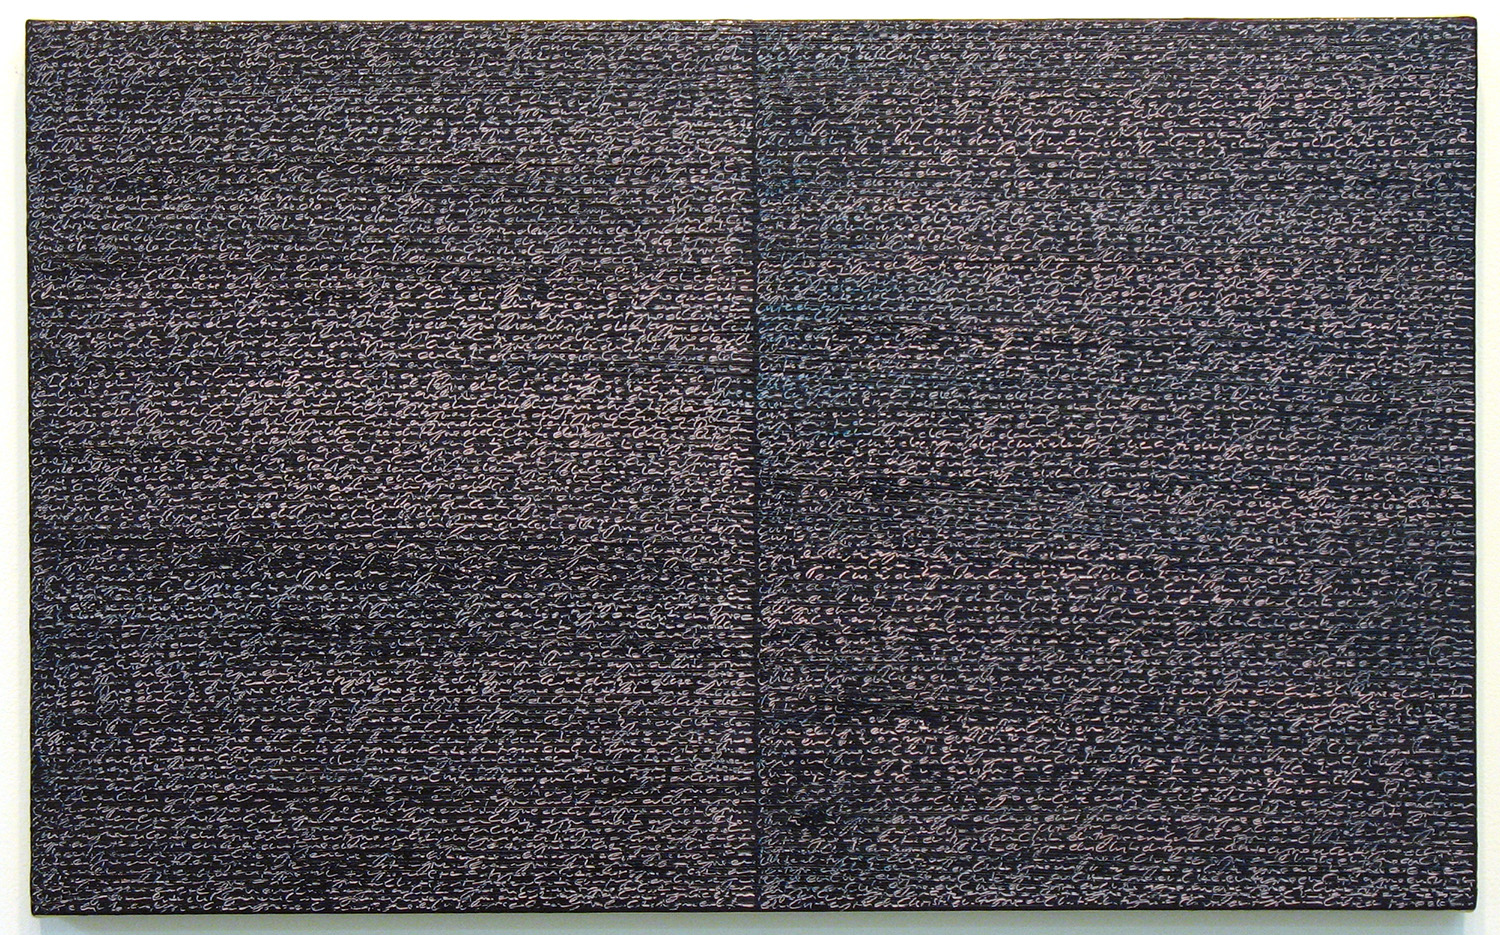 Open Book -pink-indigo-<br>oil and amber on canvas over panel, 37 x 60 cm, 2008